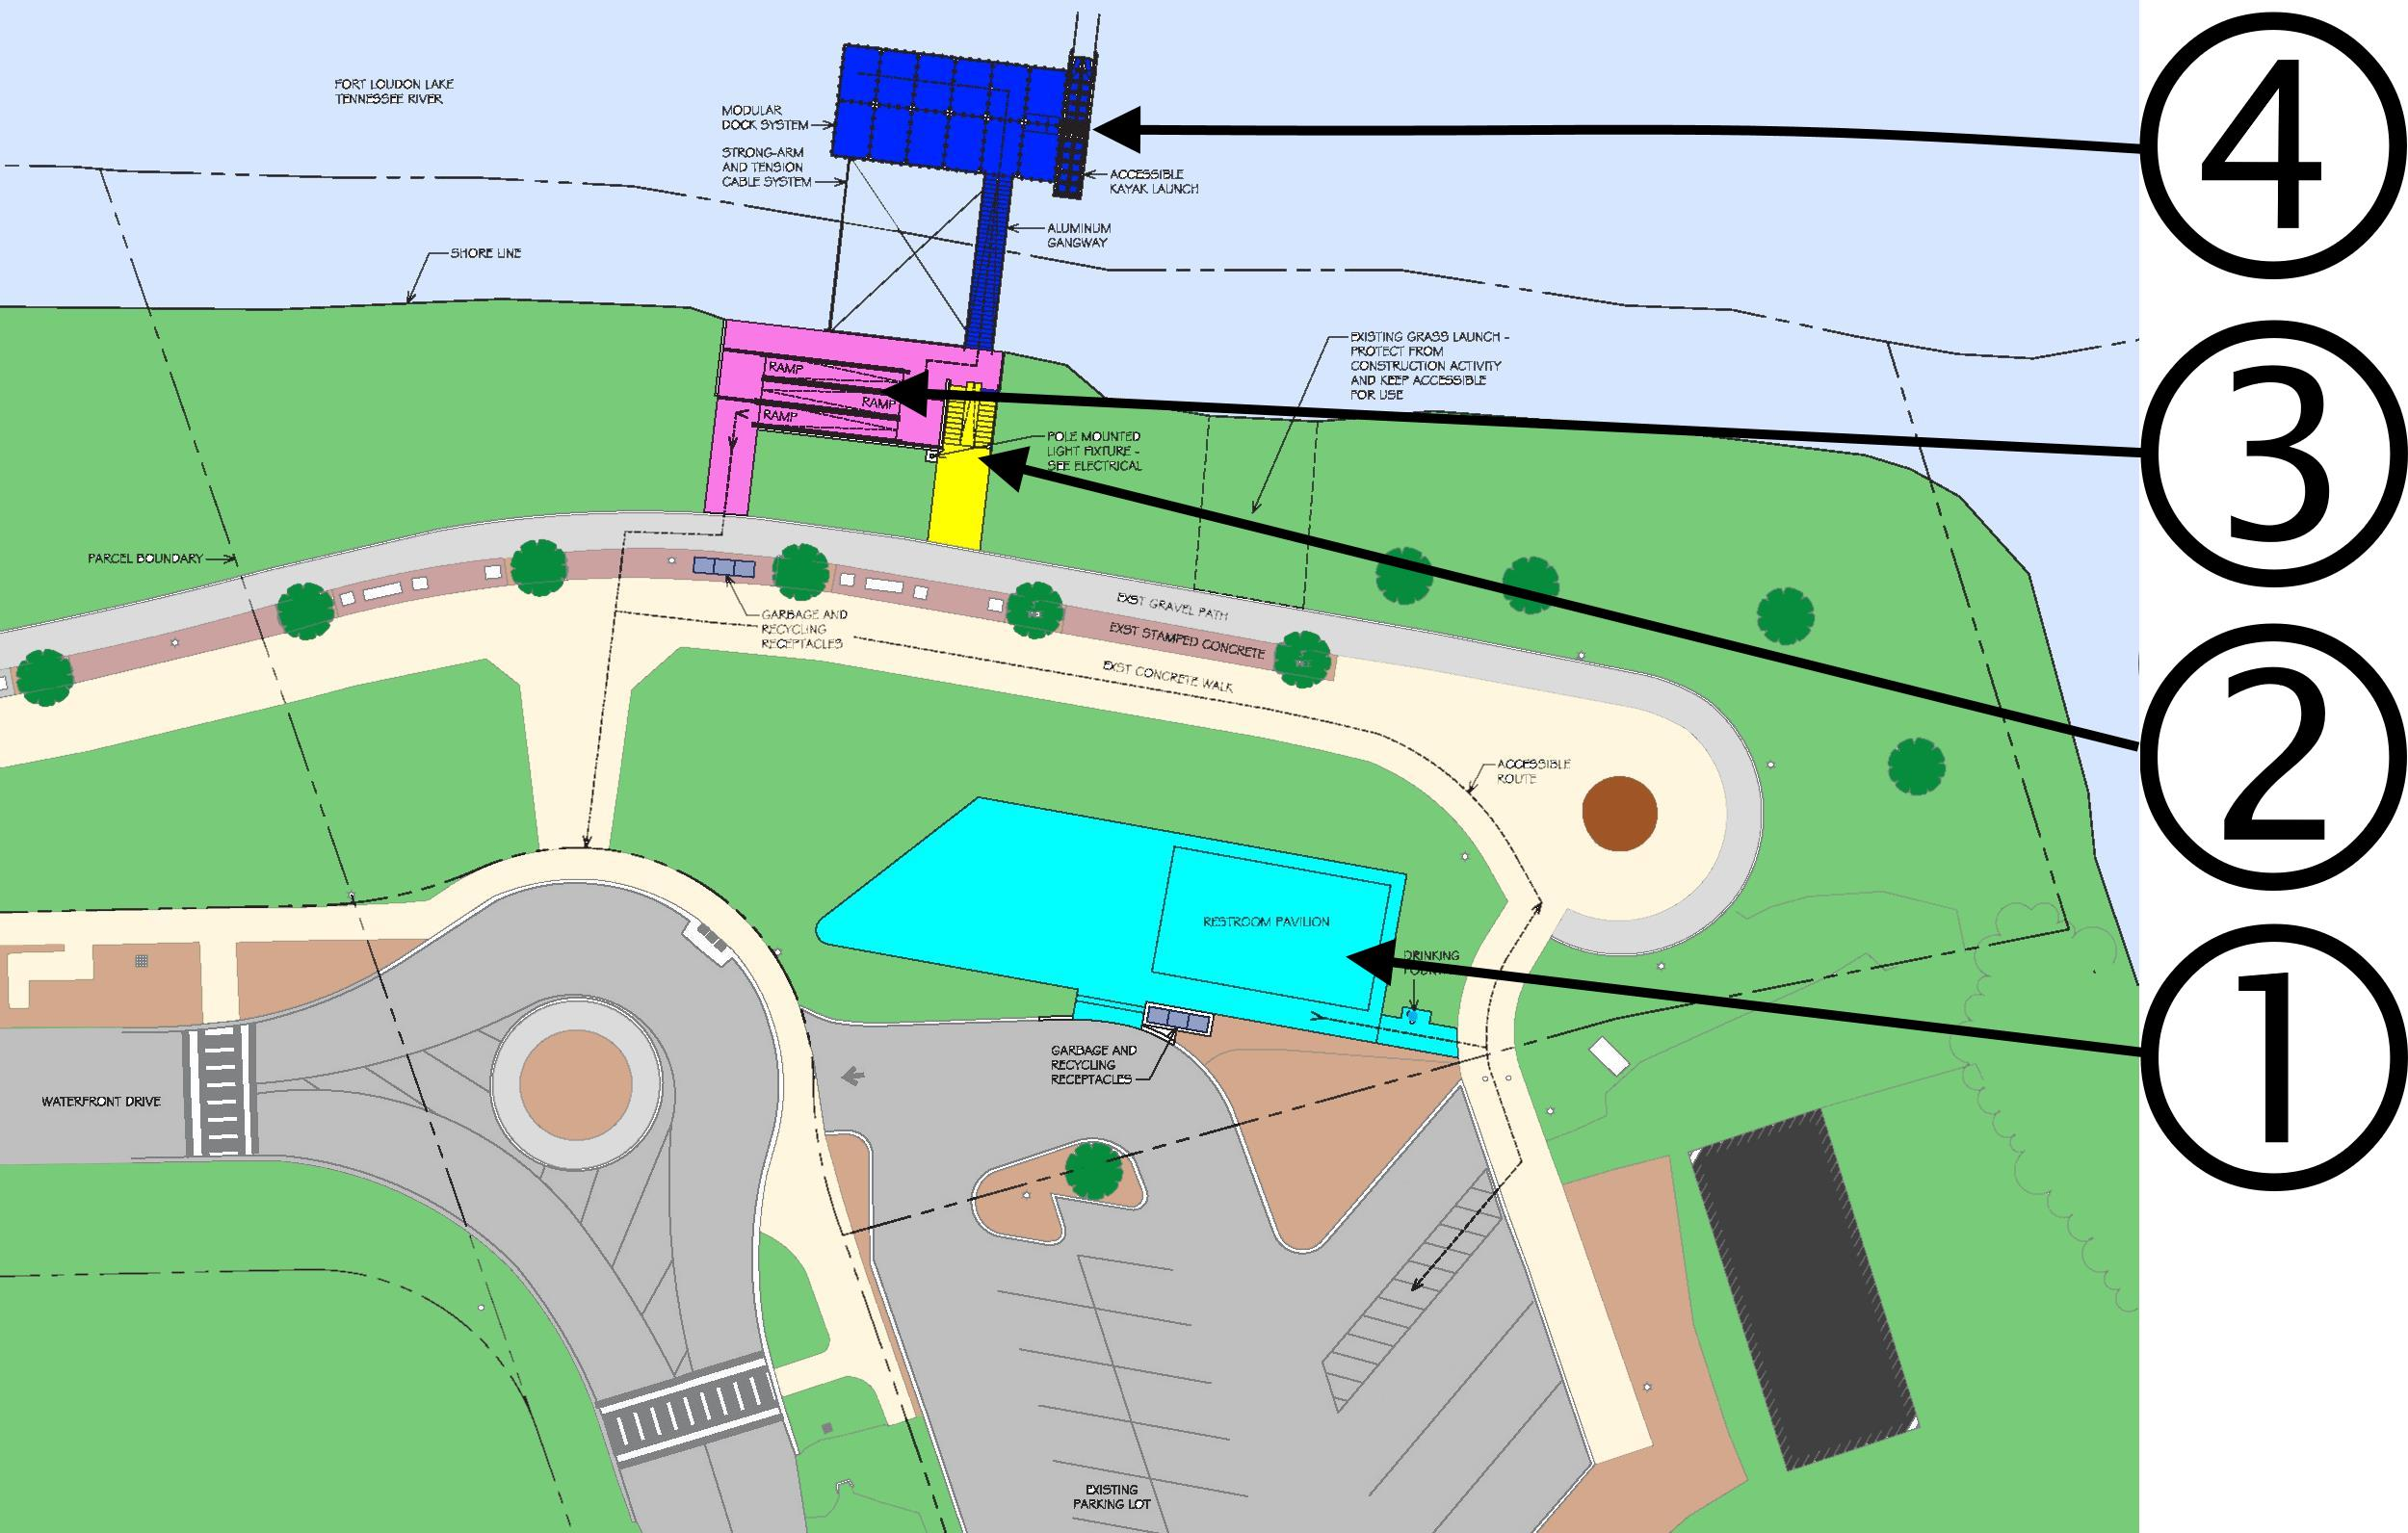 Suttree Landing Pavilion and Overlook Site Plan (Numbered).jpg